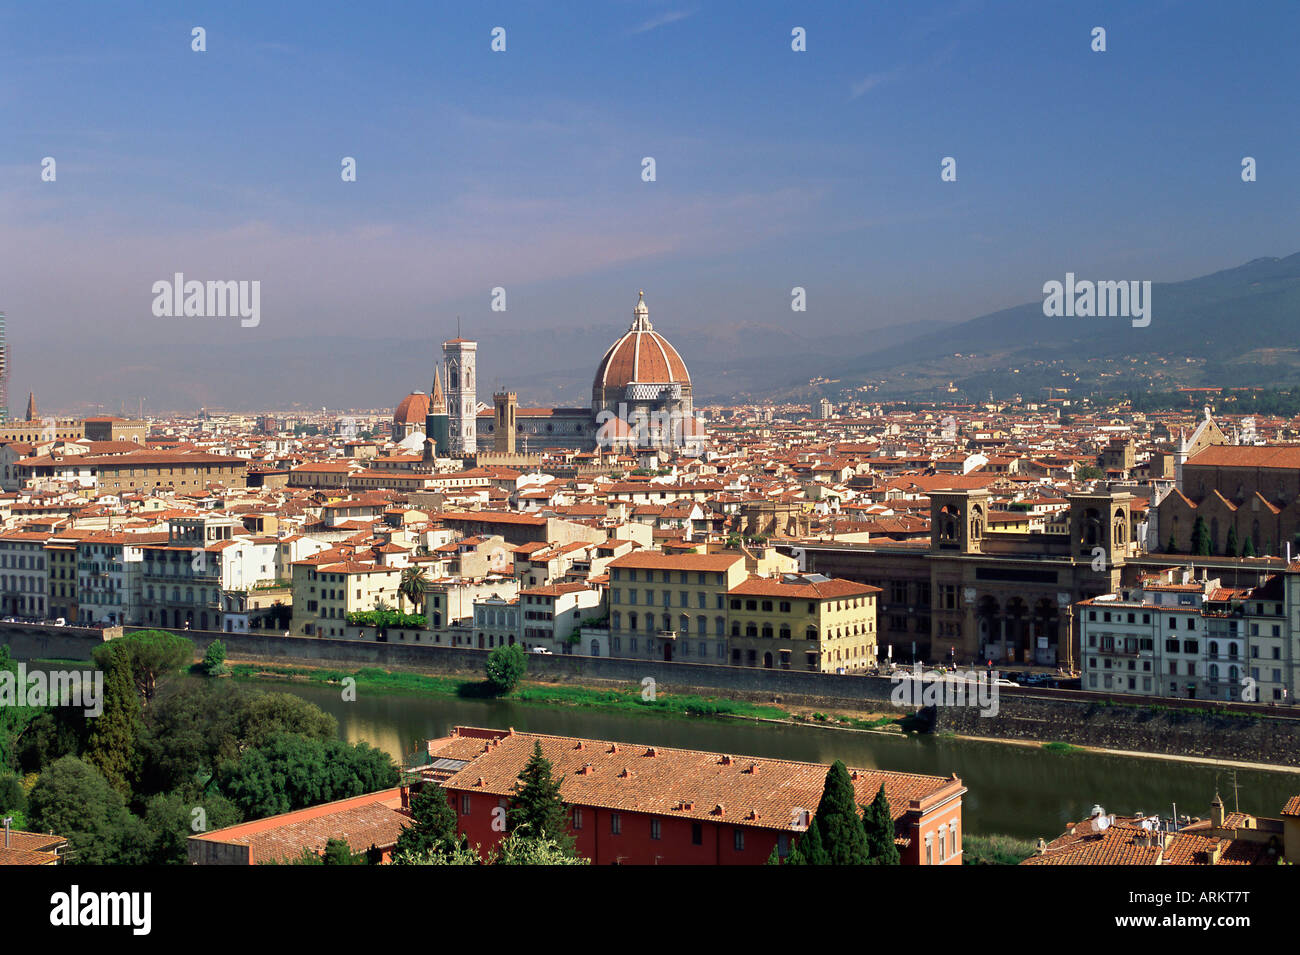 View over the city skyline, Florence, Tuscany, Italy, Europe - Stock Image